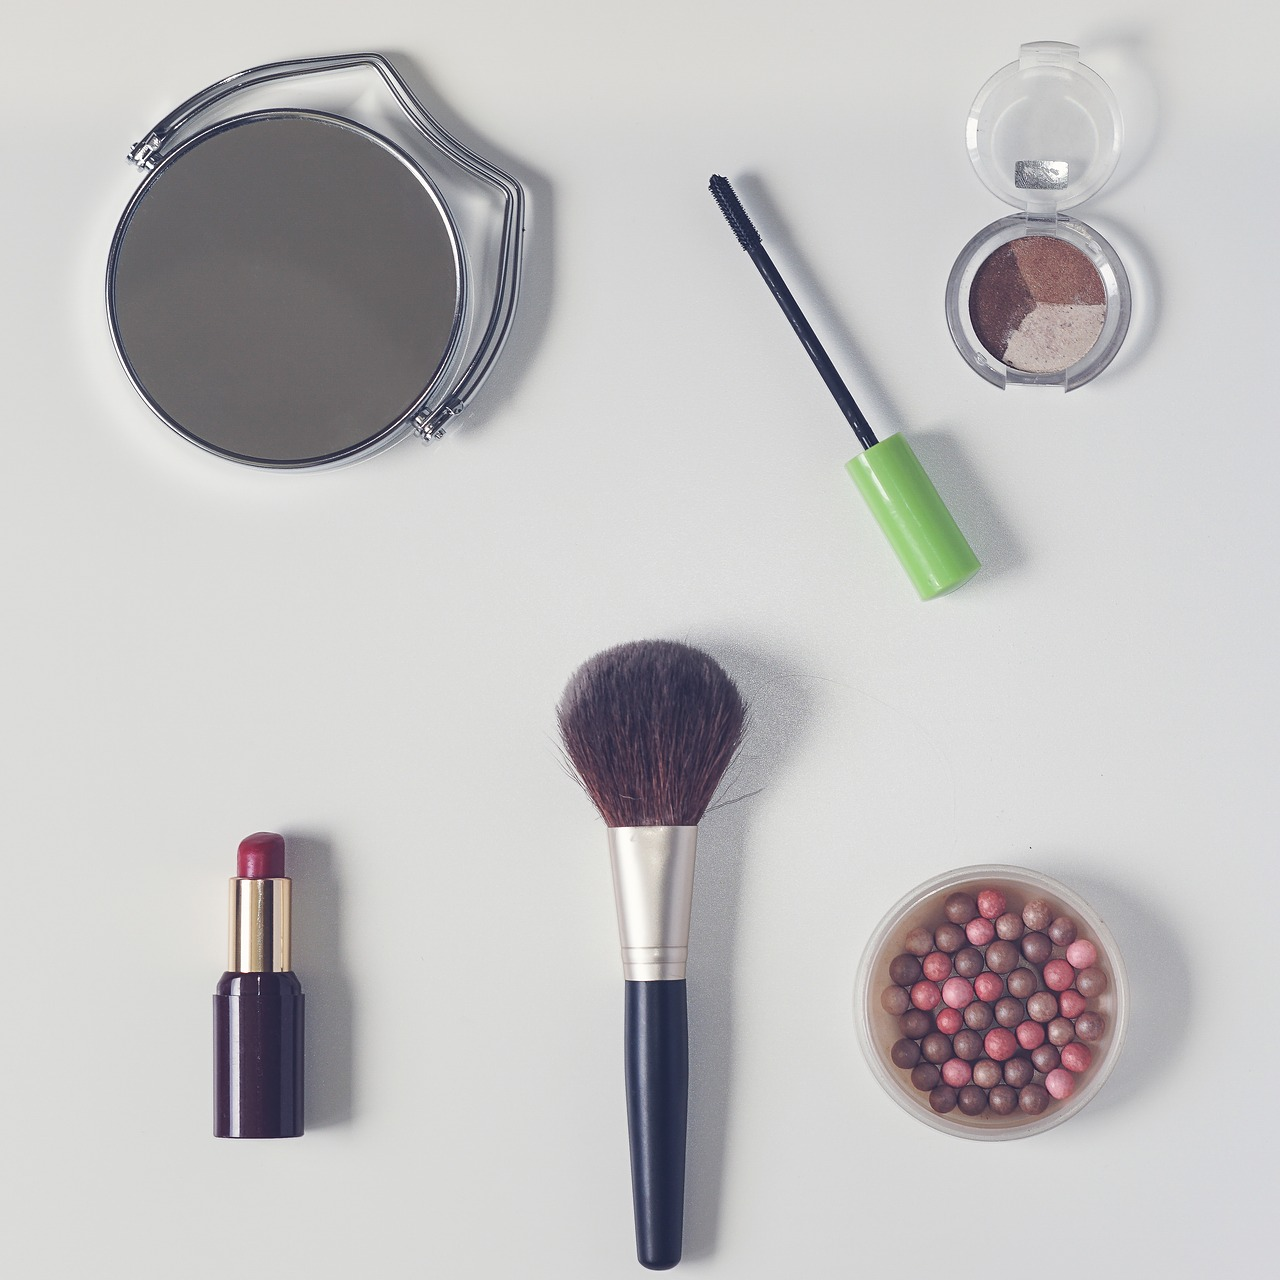 Paraben free makeup brands